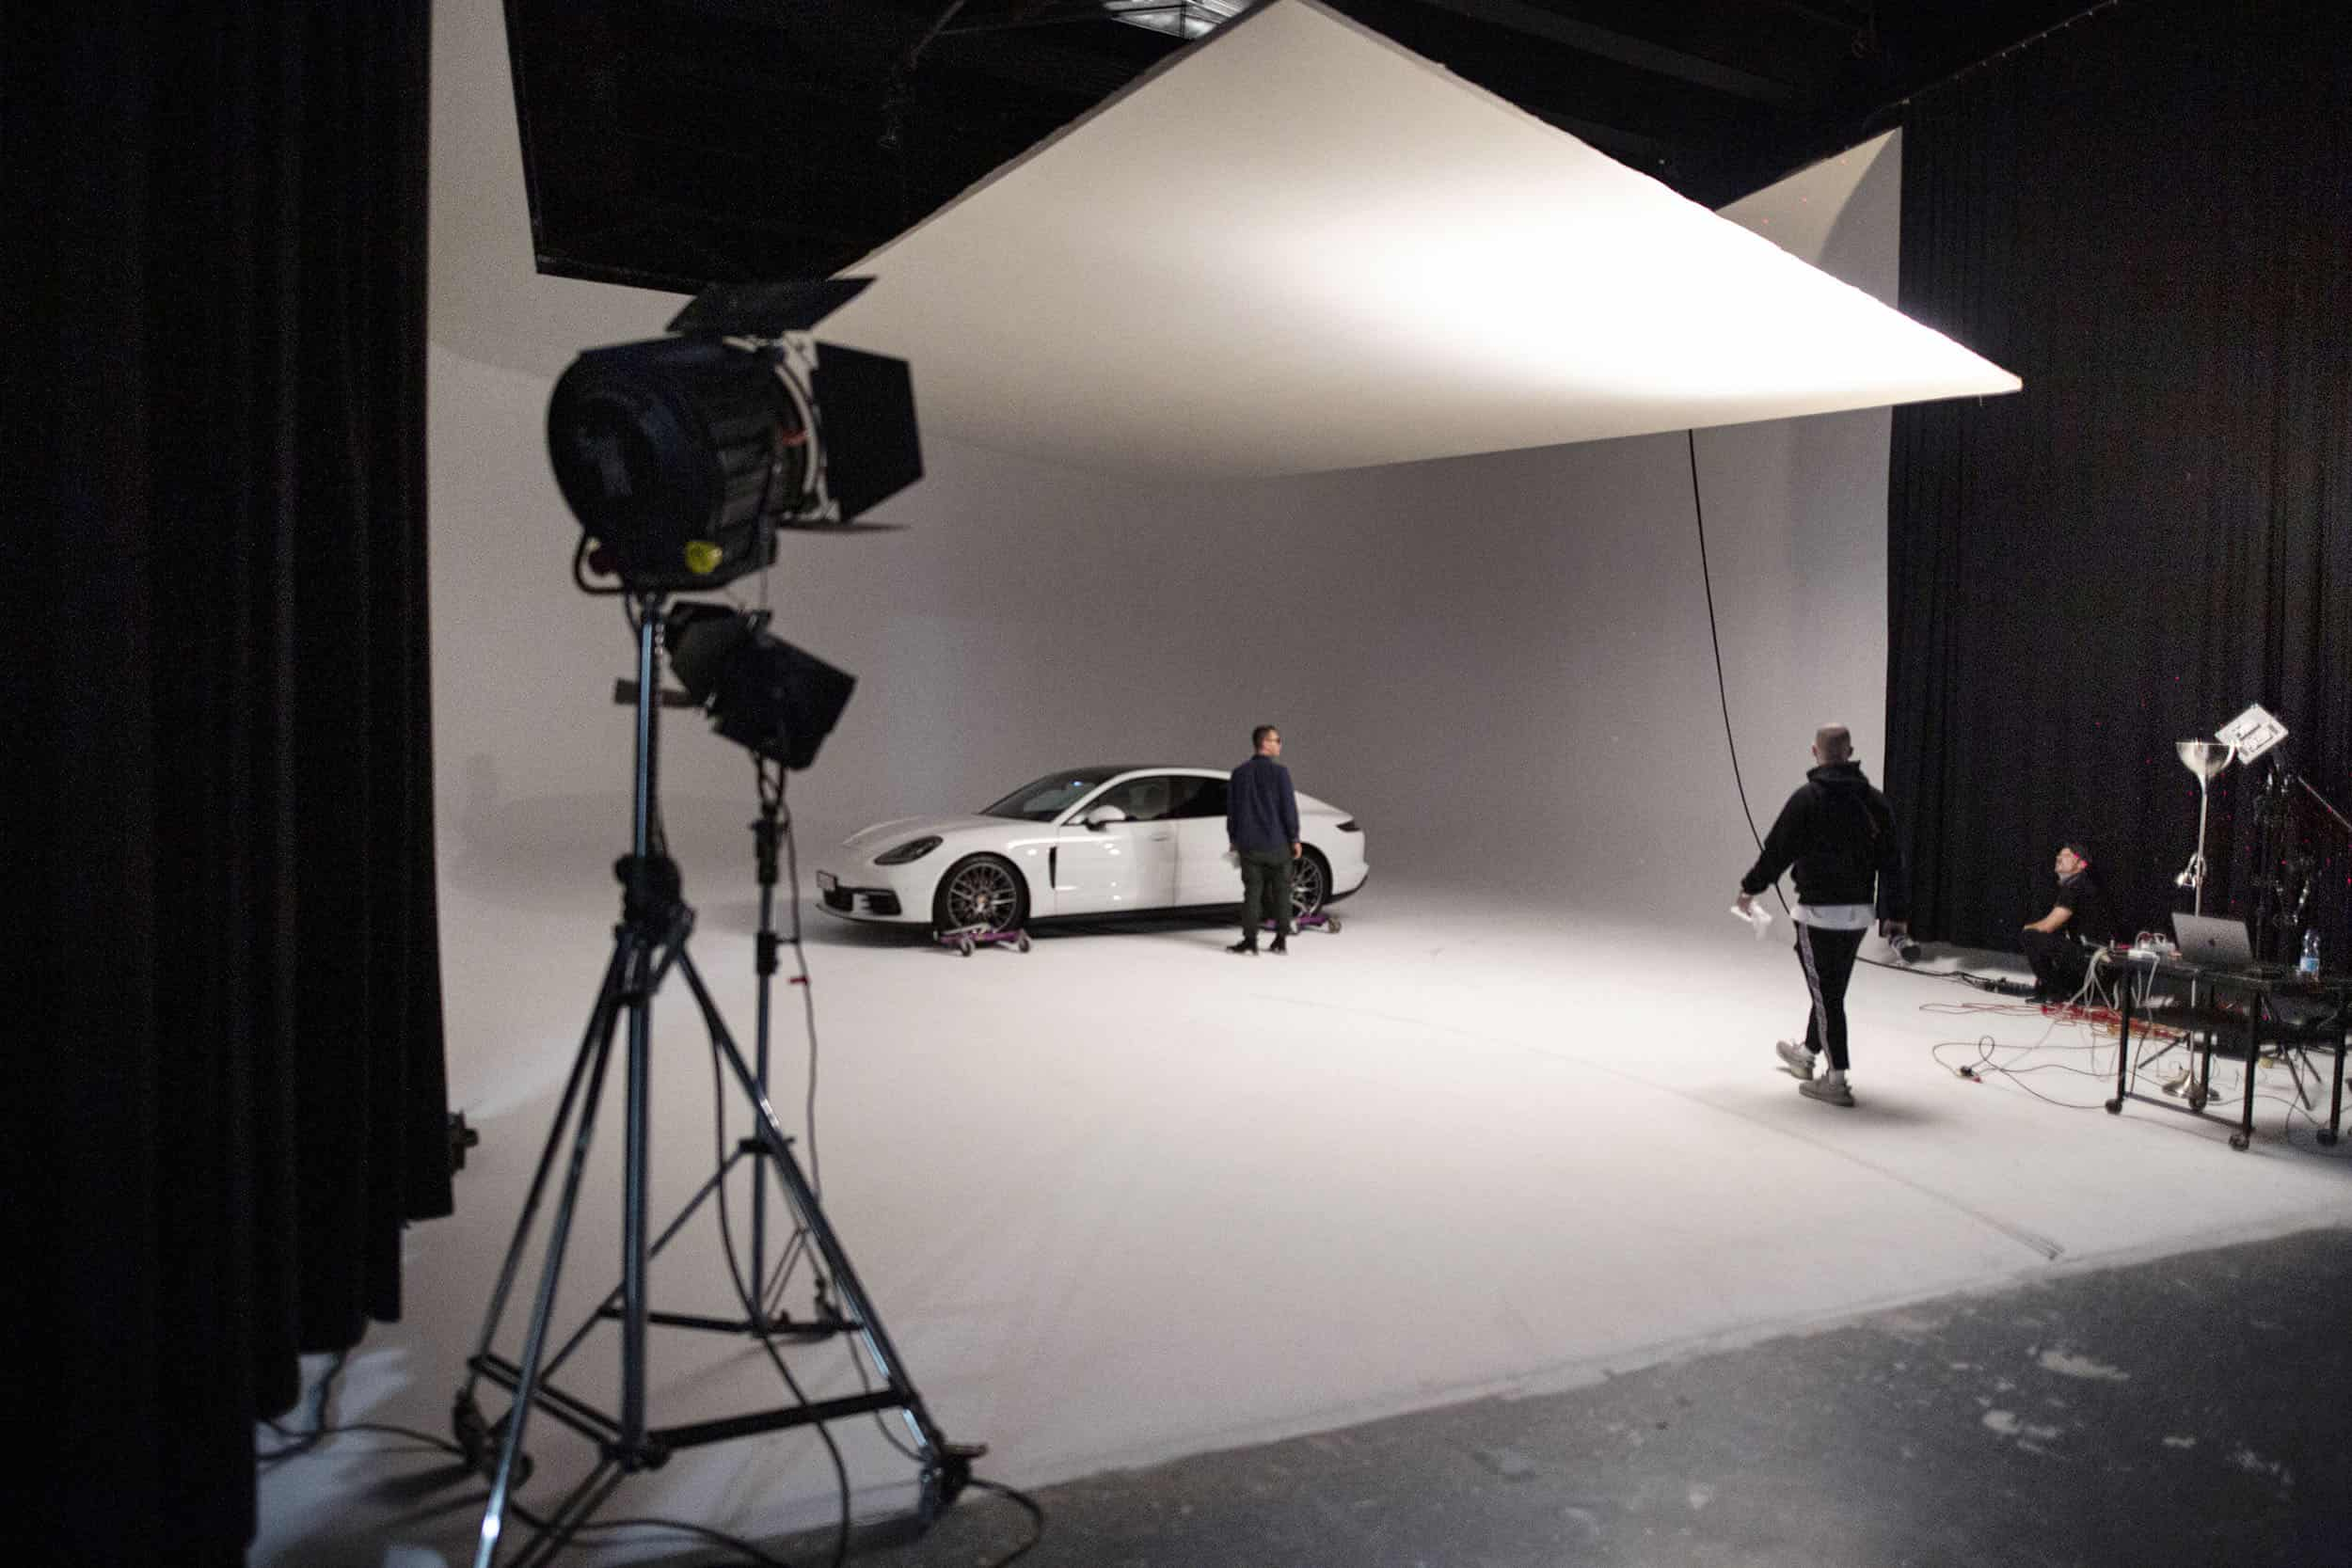 studio-ignatov-wkw-automotive-imagekampagne-makingof-01